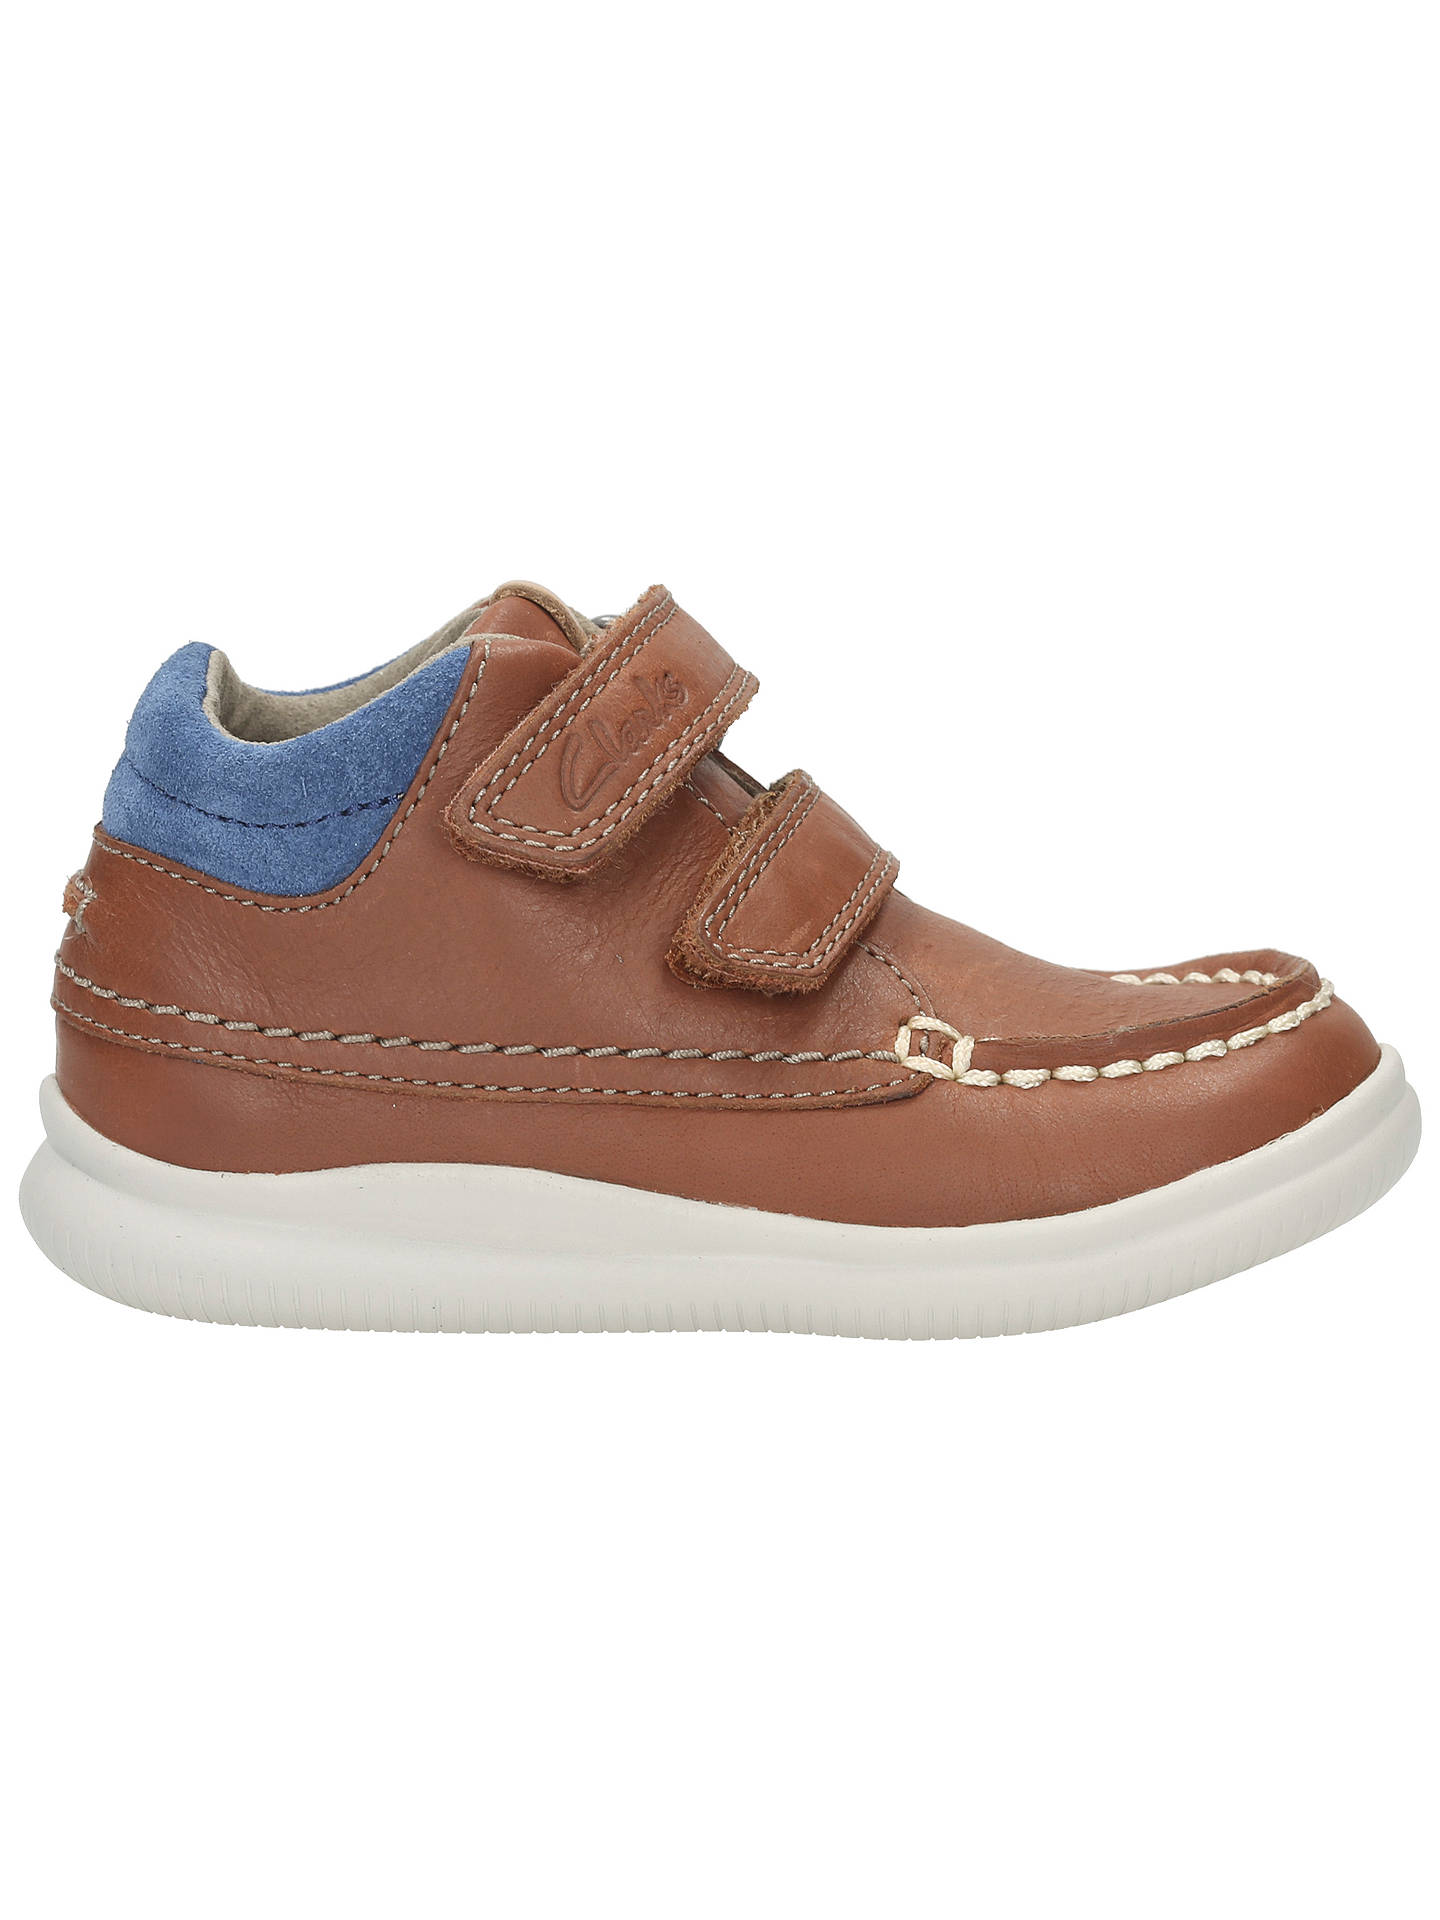 f5cdbac2192e6b Clarks Children s Cloud Tuku First Shoes at John Lewis   Partners